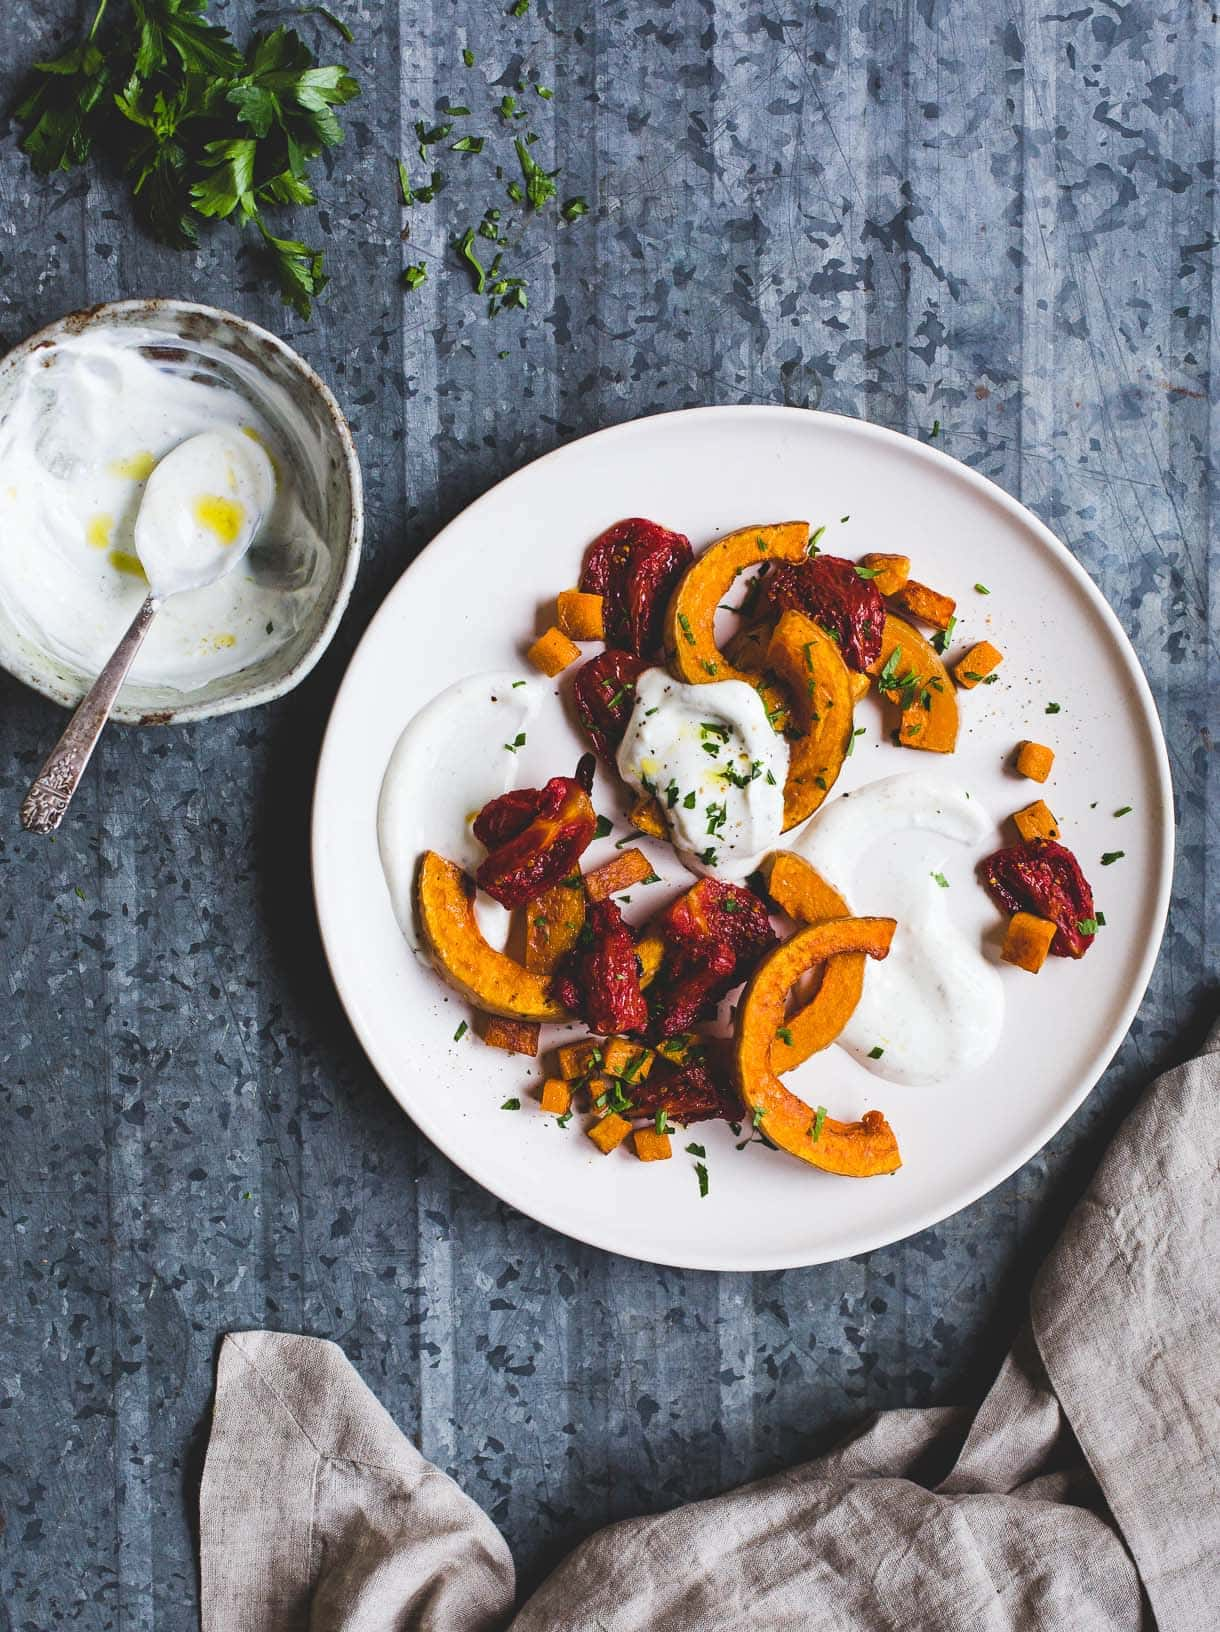 Oven Roasted Butternut Squash and Tomatoes with Cardamom Yogurt Sauce